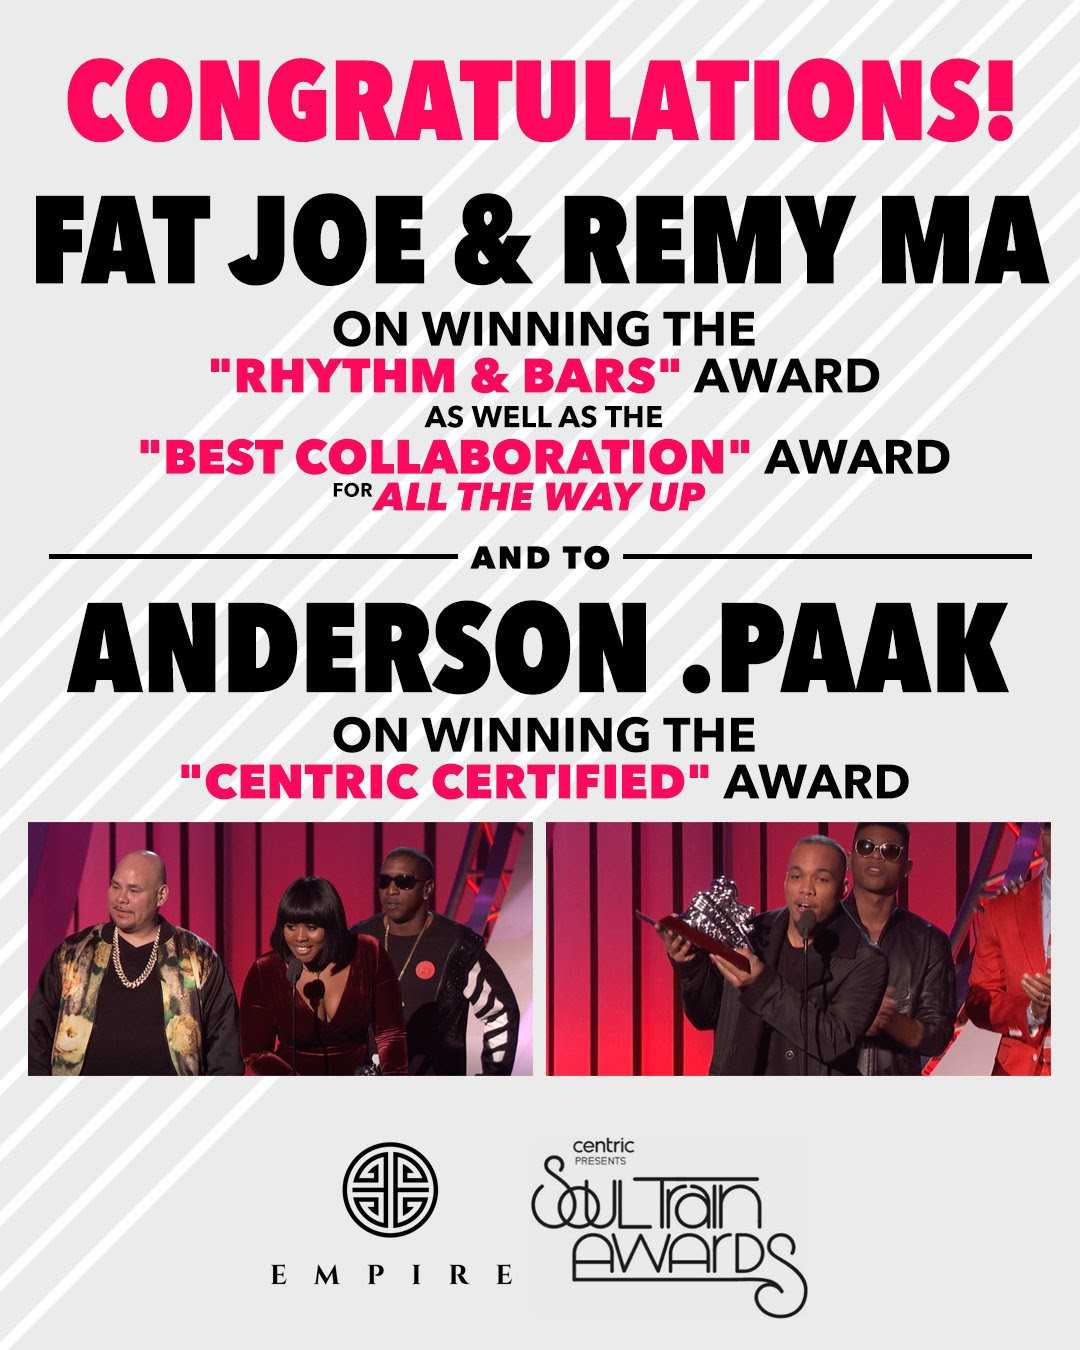 EMPIRE impacts the 2016 Soul Train Awards w/ Anderson .Paak, Fat Joe & Remy Ma, D.R.A.M. and more